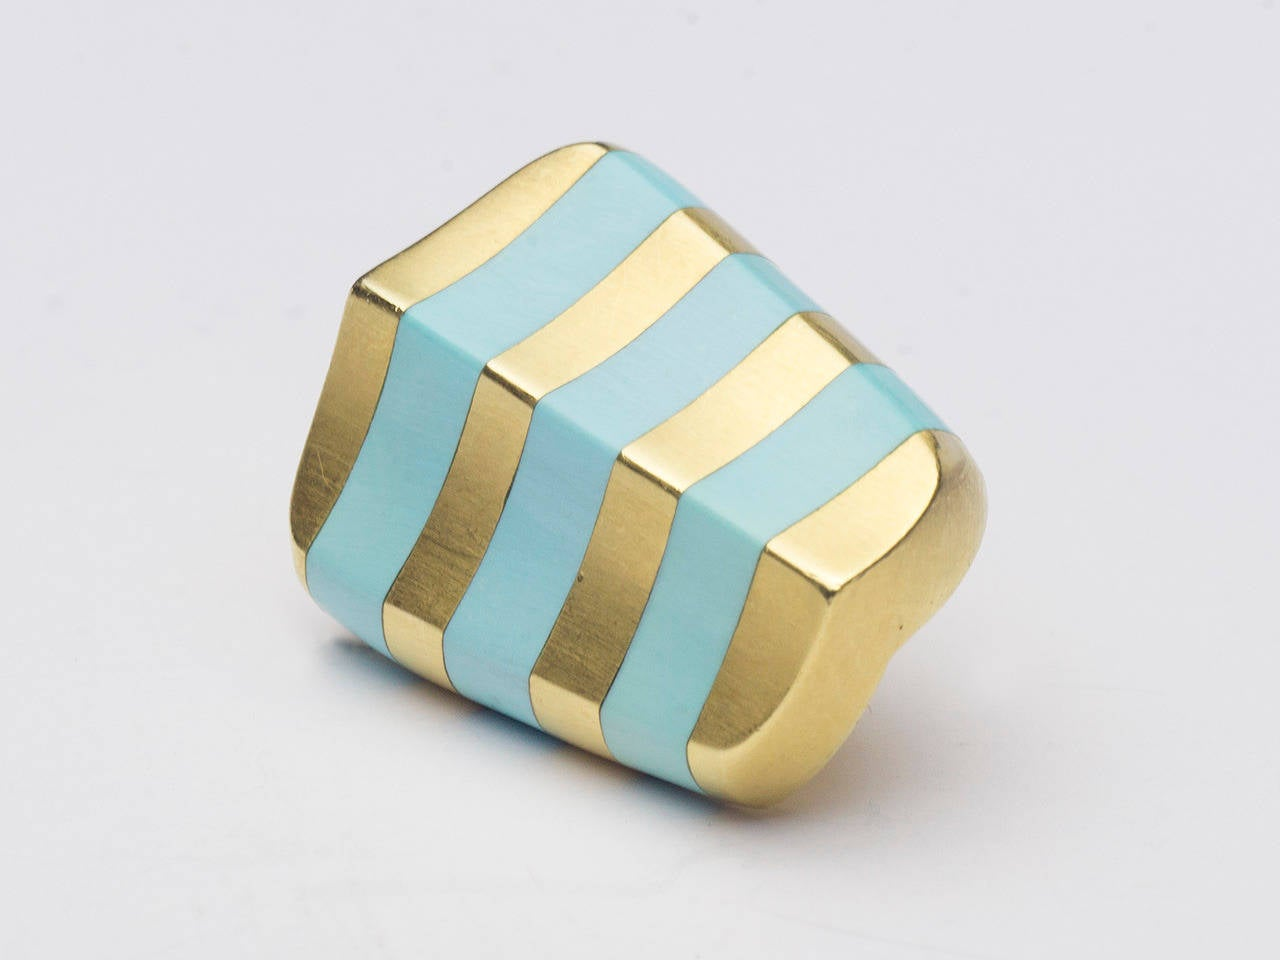 18 kt. earclips set with turquoise in a stripe pattern. Signed ANGELA CUMMINGS 750.